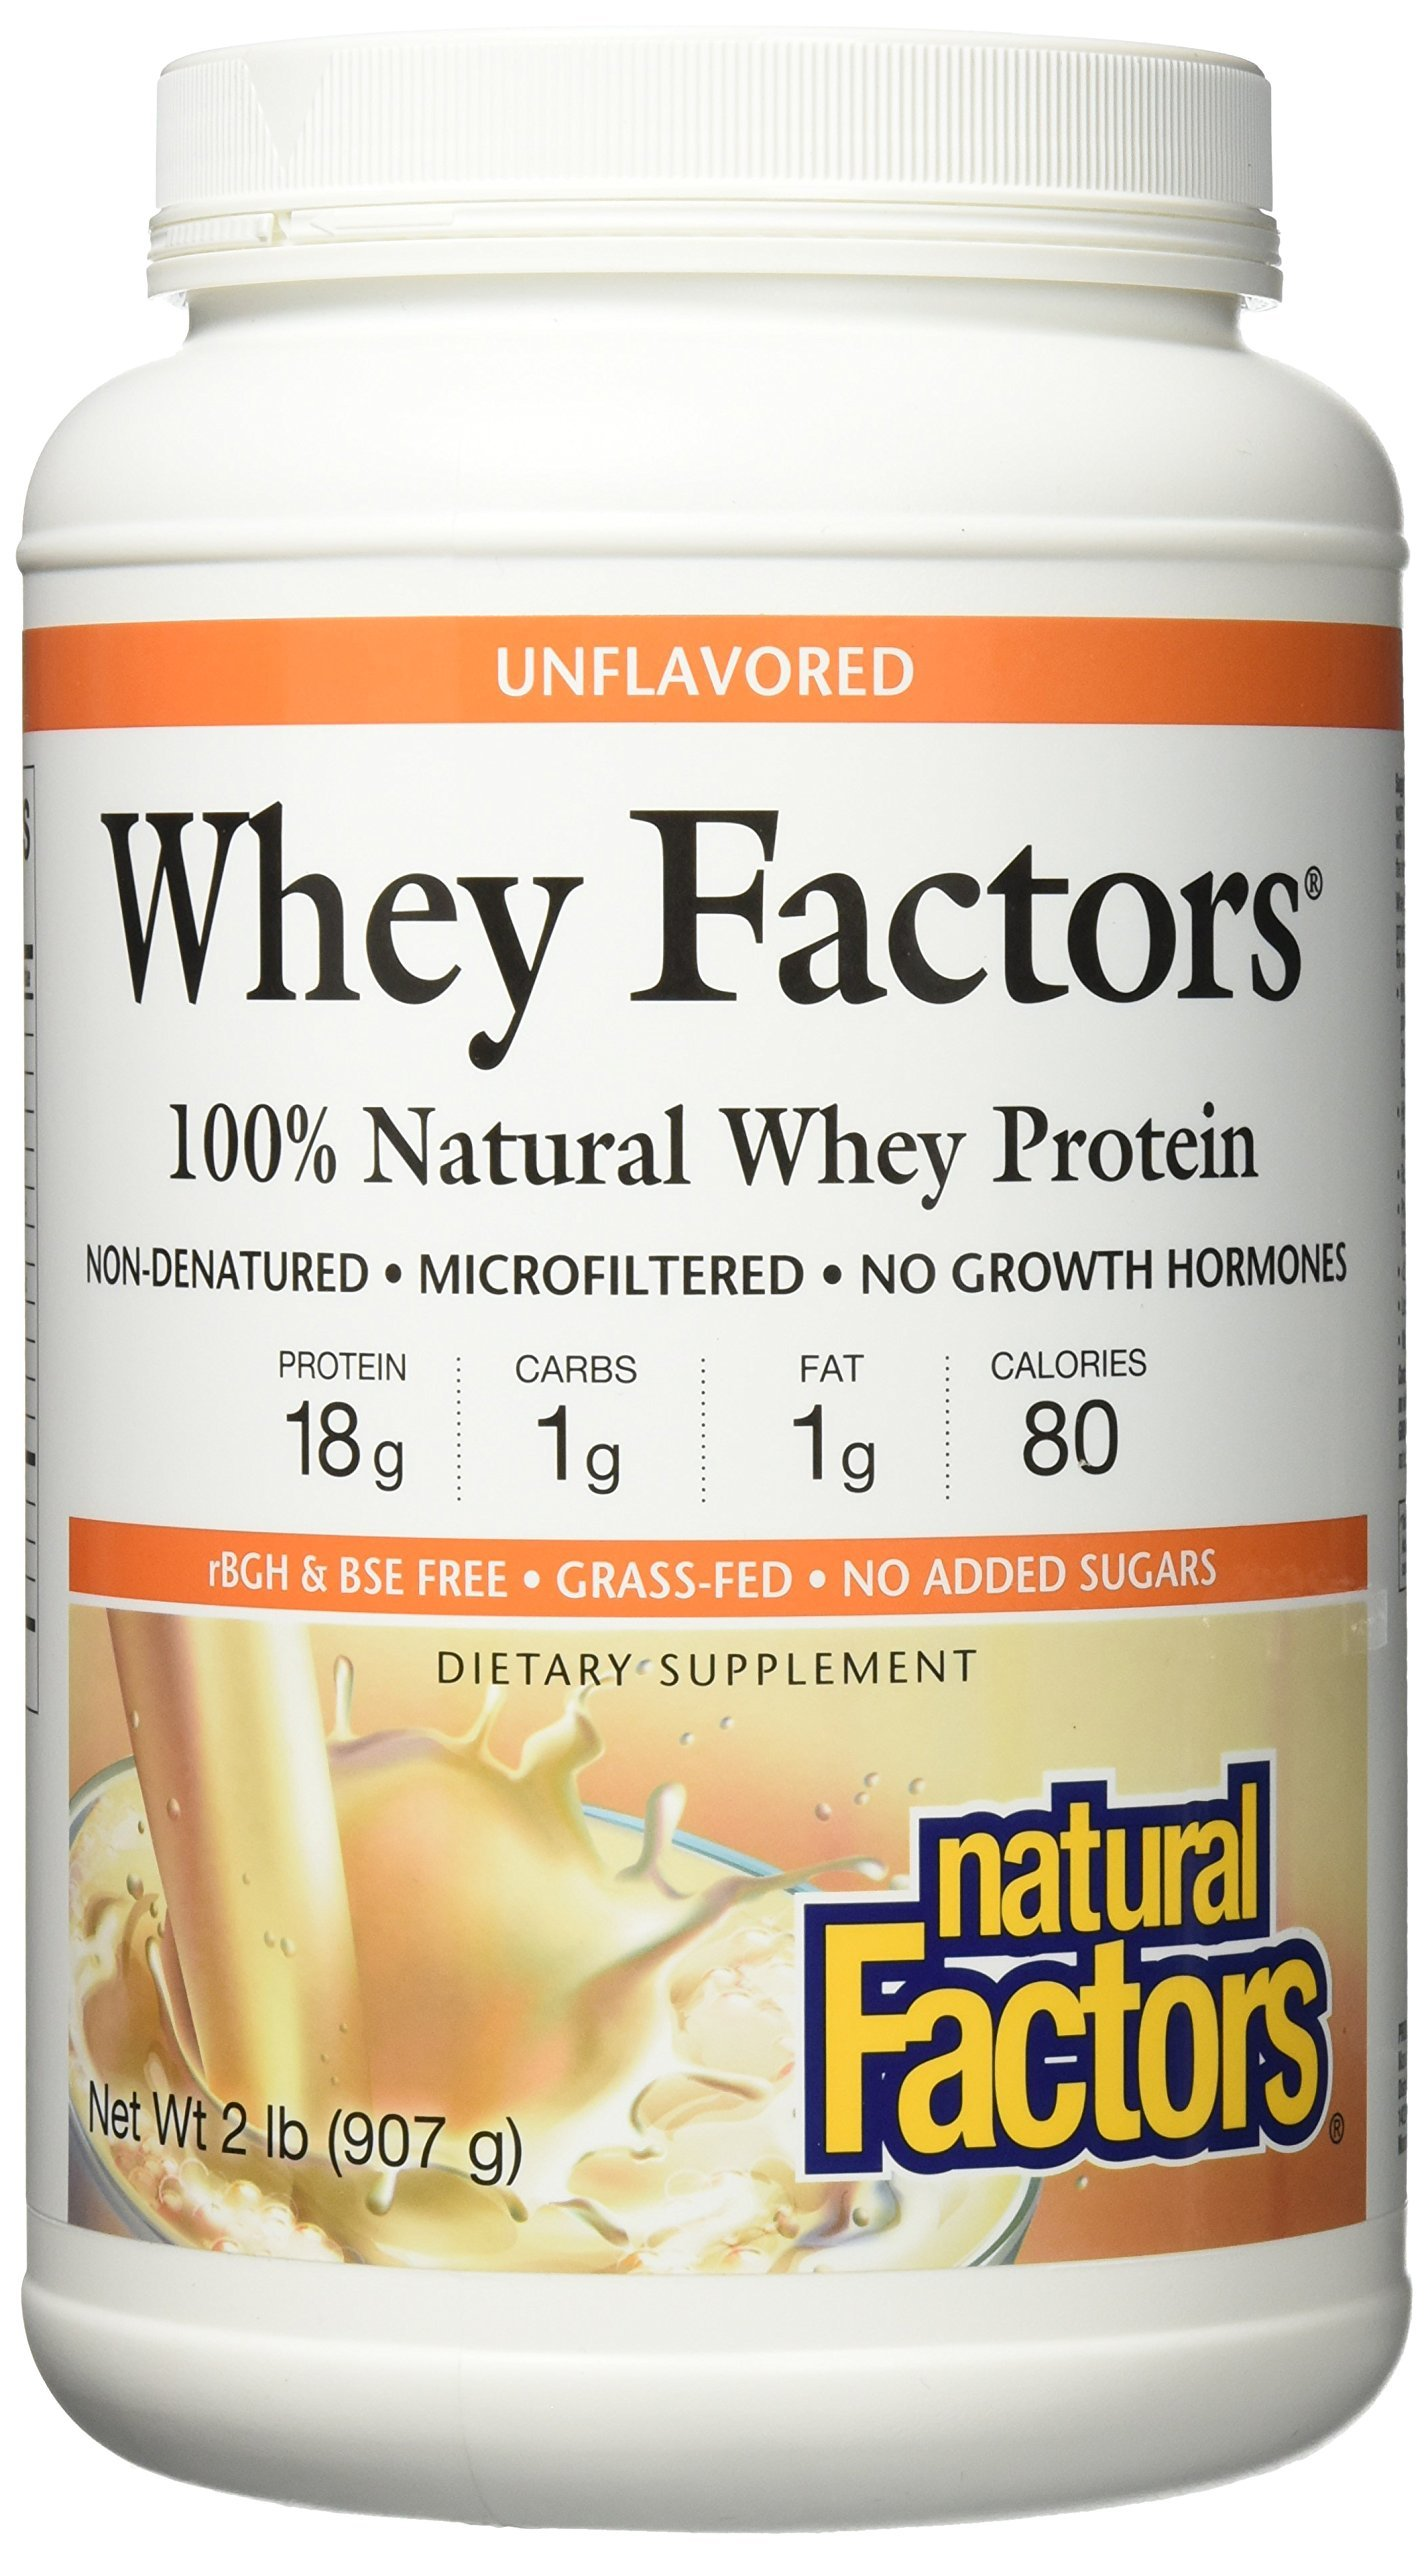 whey factors natural whey protein reviews